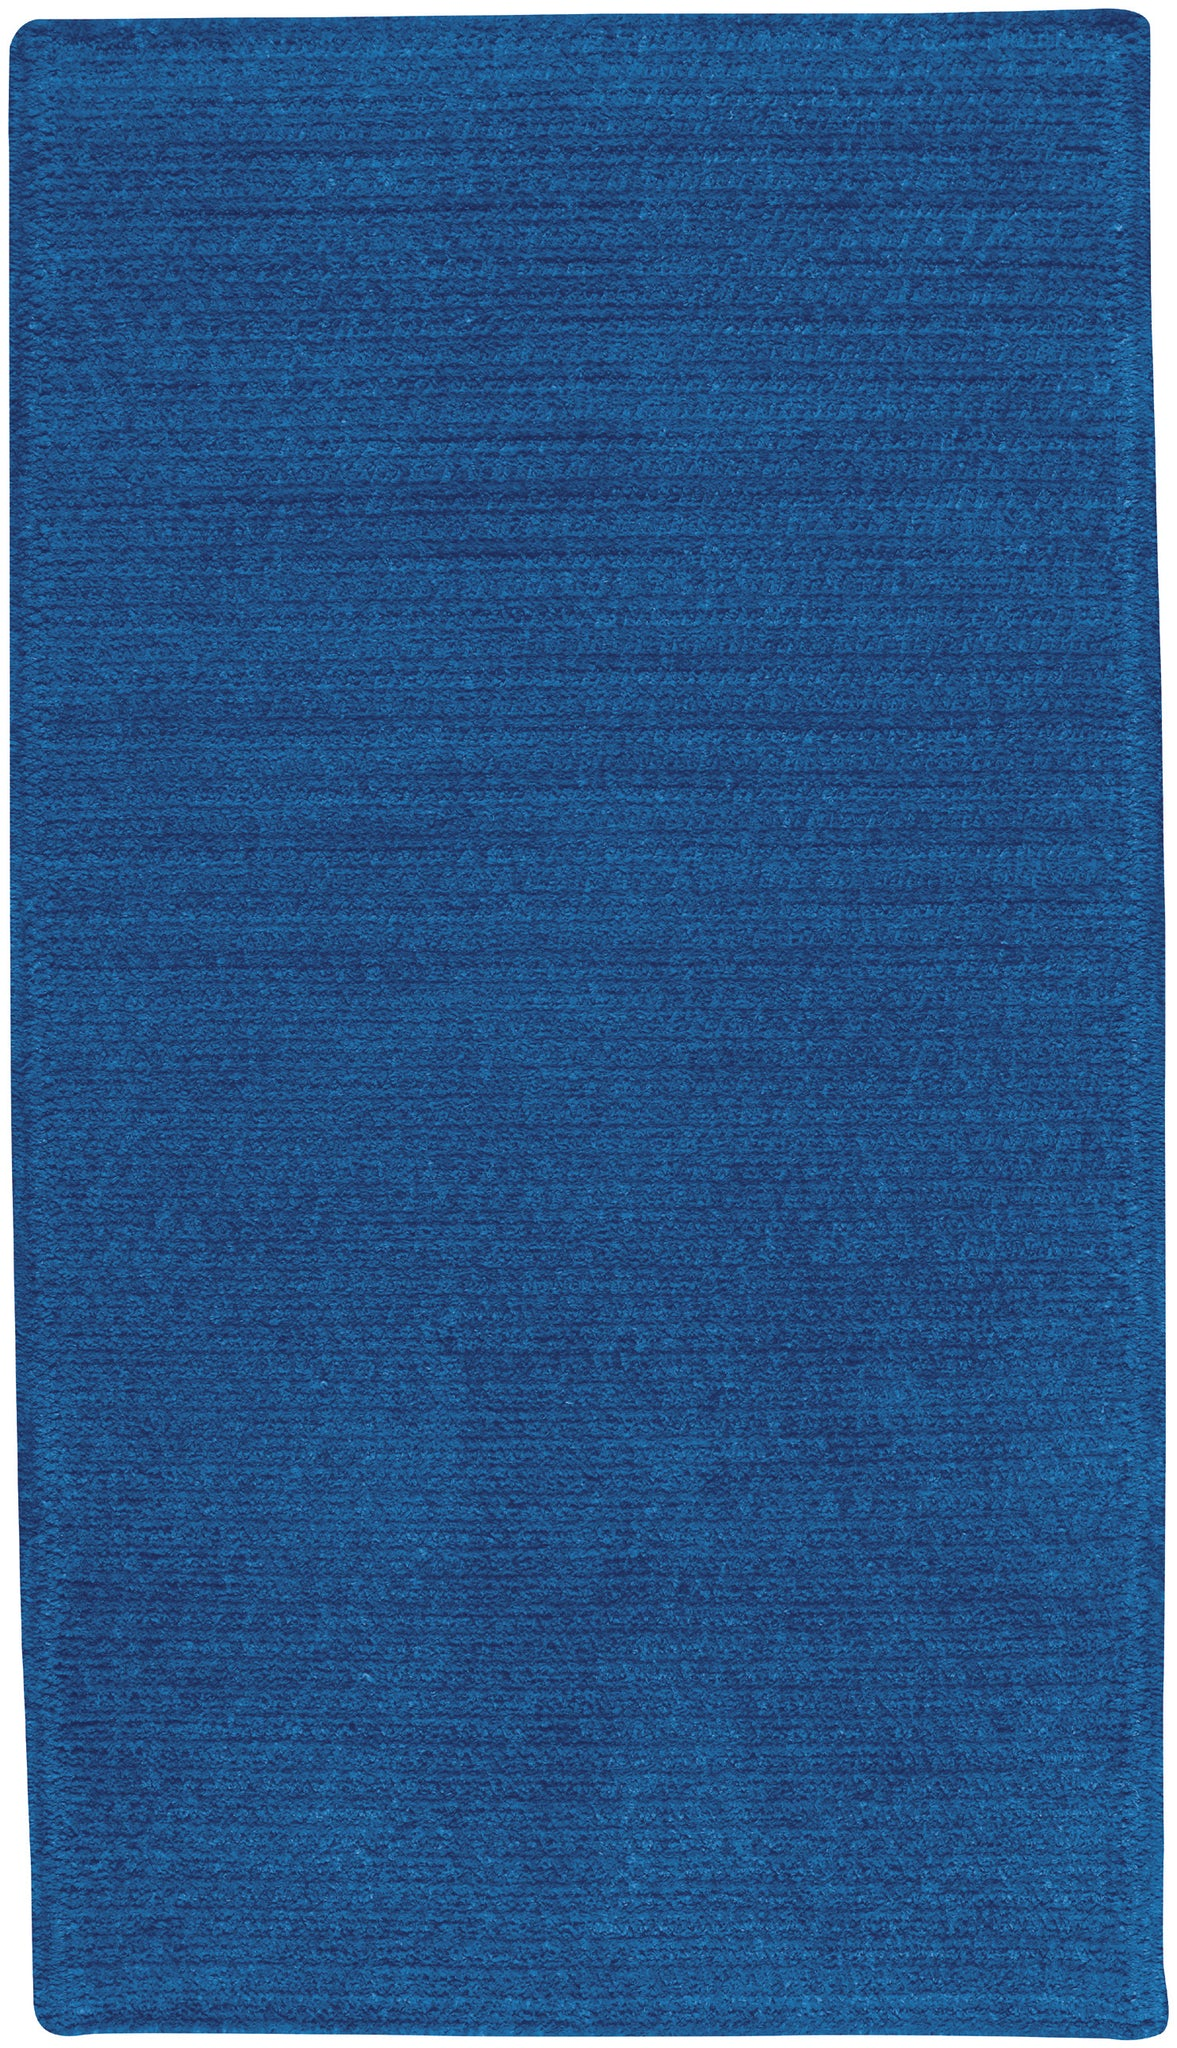 Capel Custom Classics 0325 Royal Blue 465 Area Rug main image